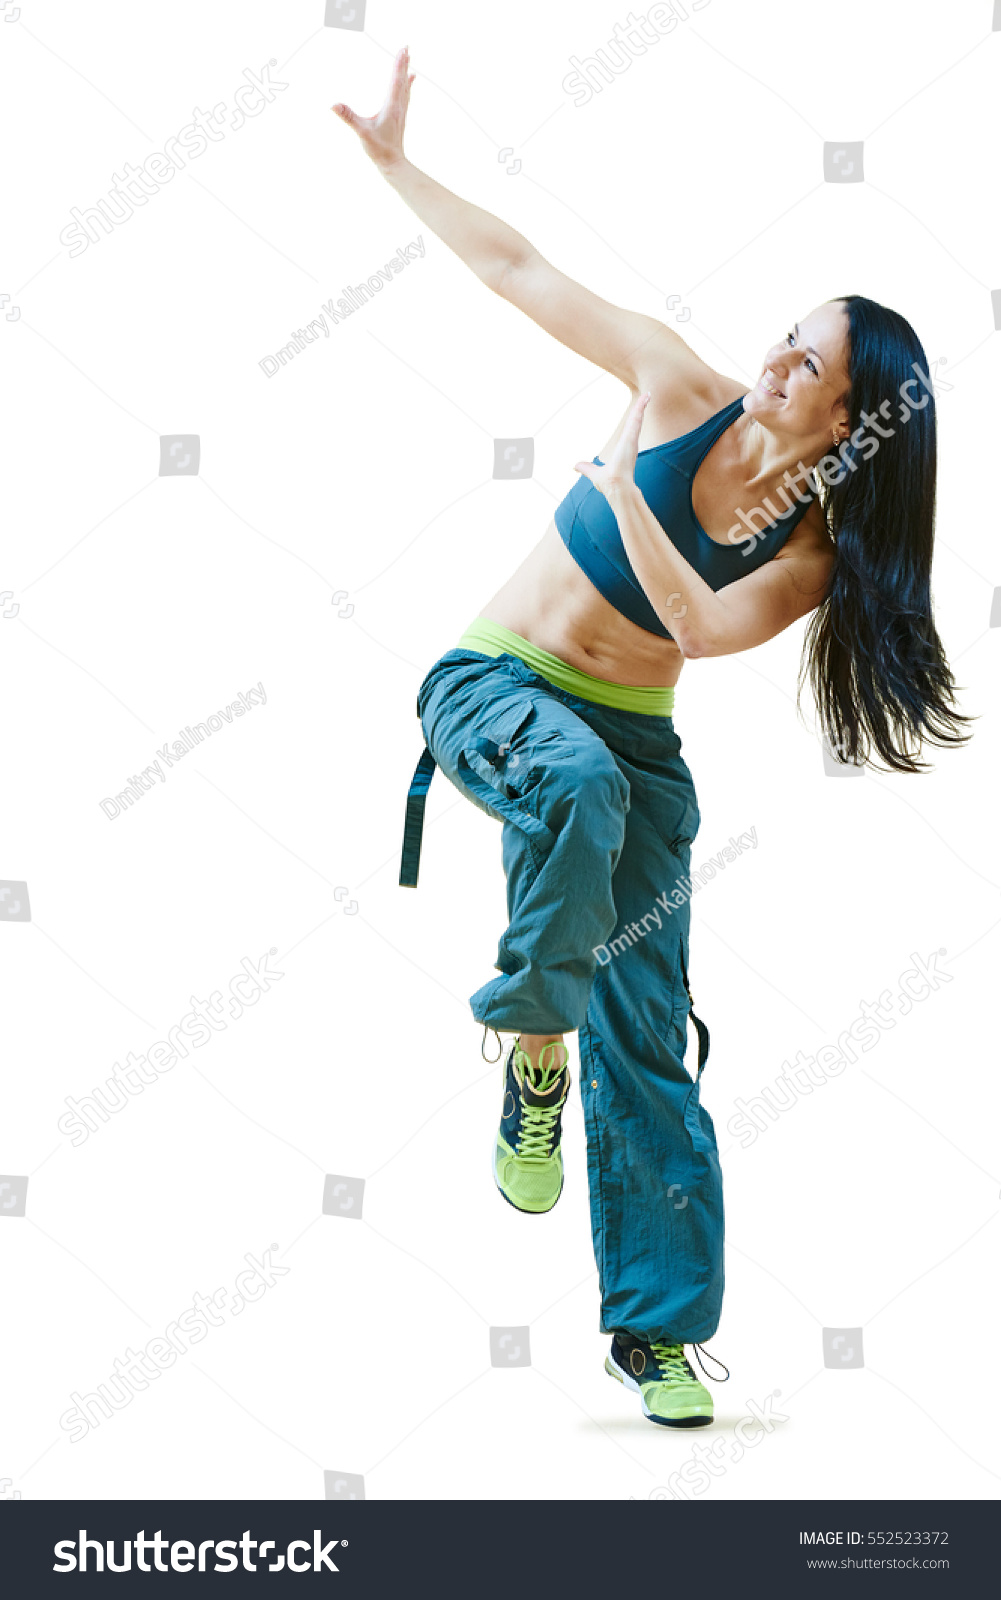 Fitness Zumba Instructor Dancing Exercises Stock Photo Edit Now